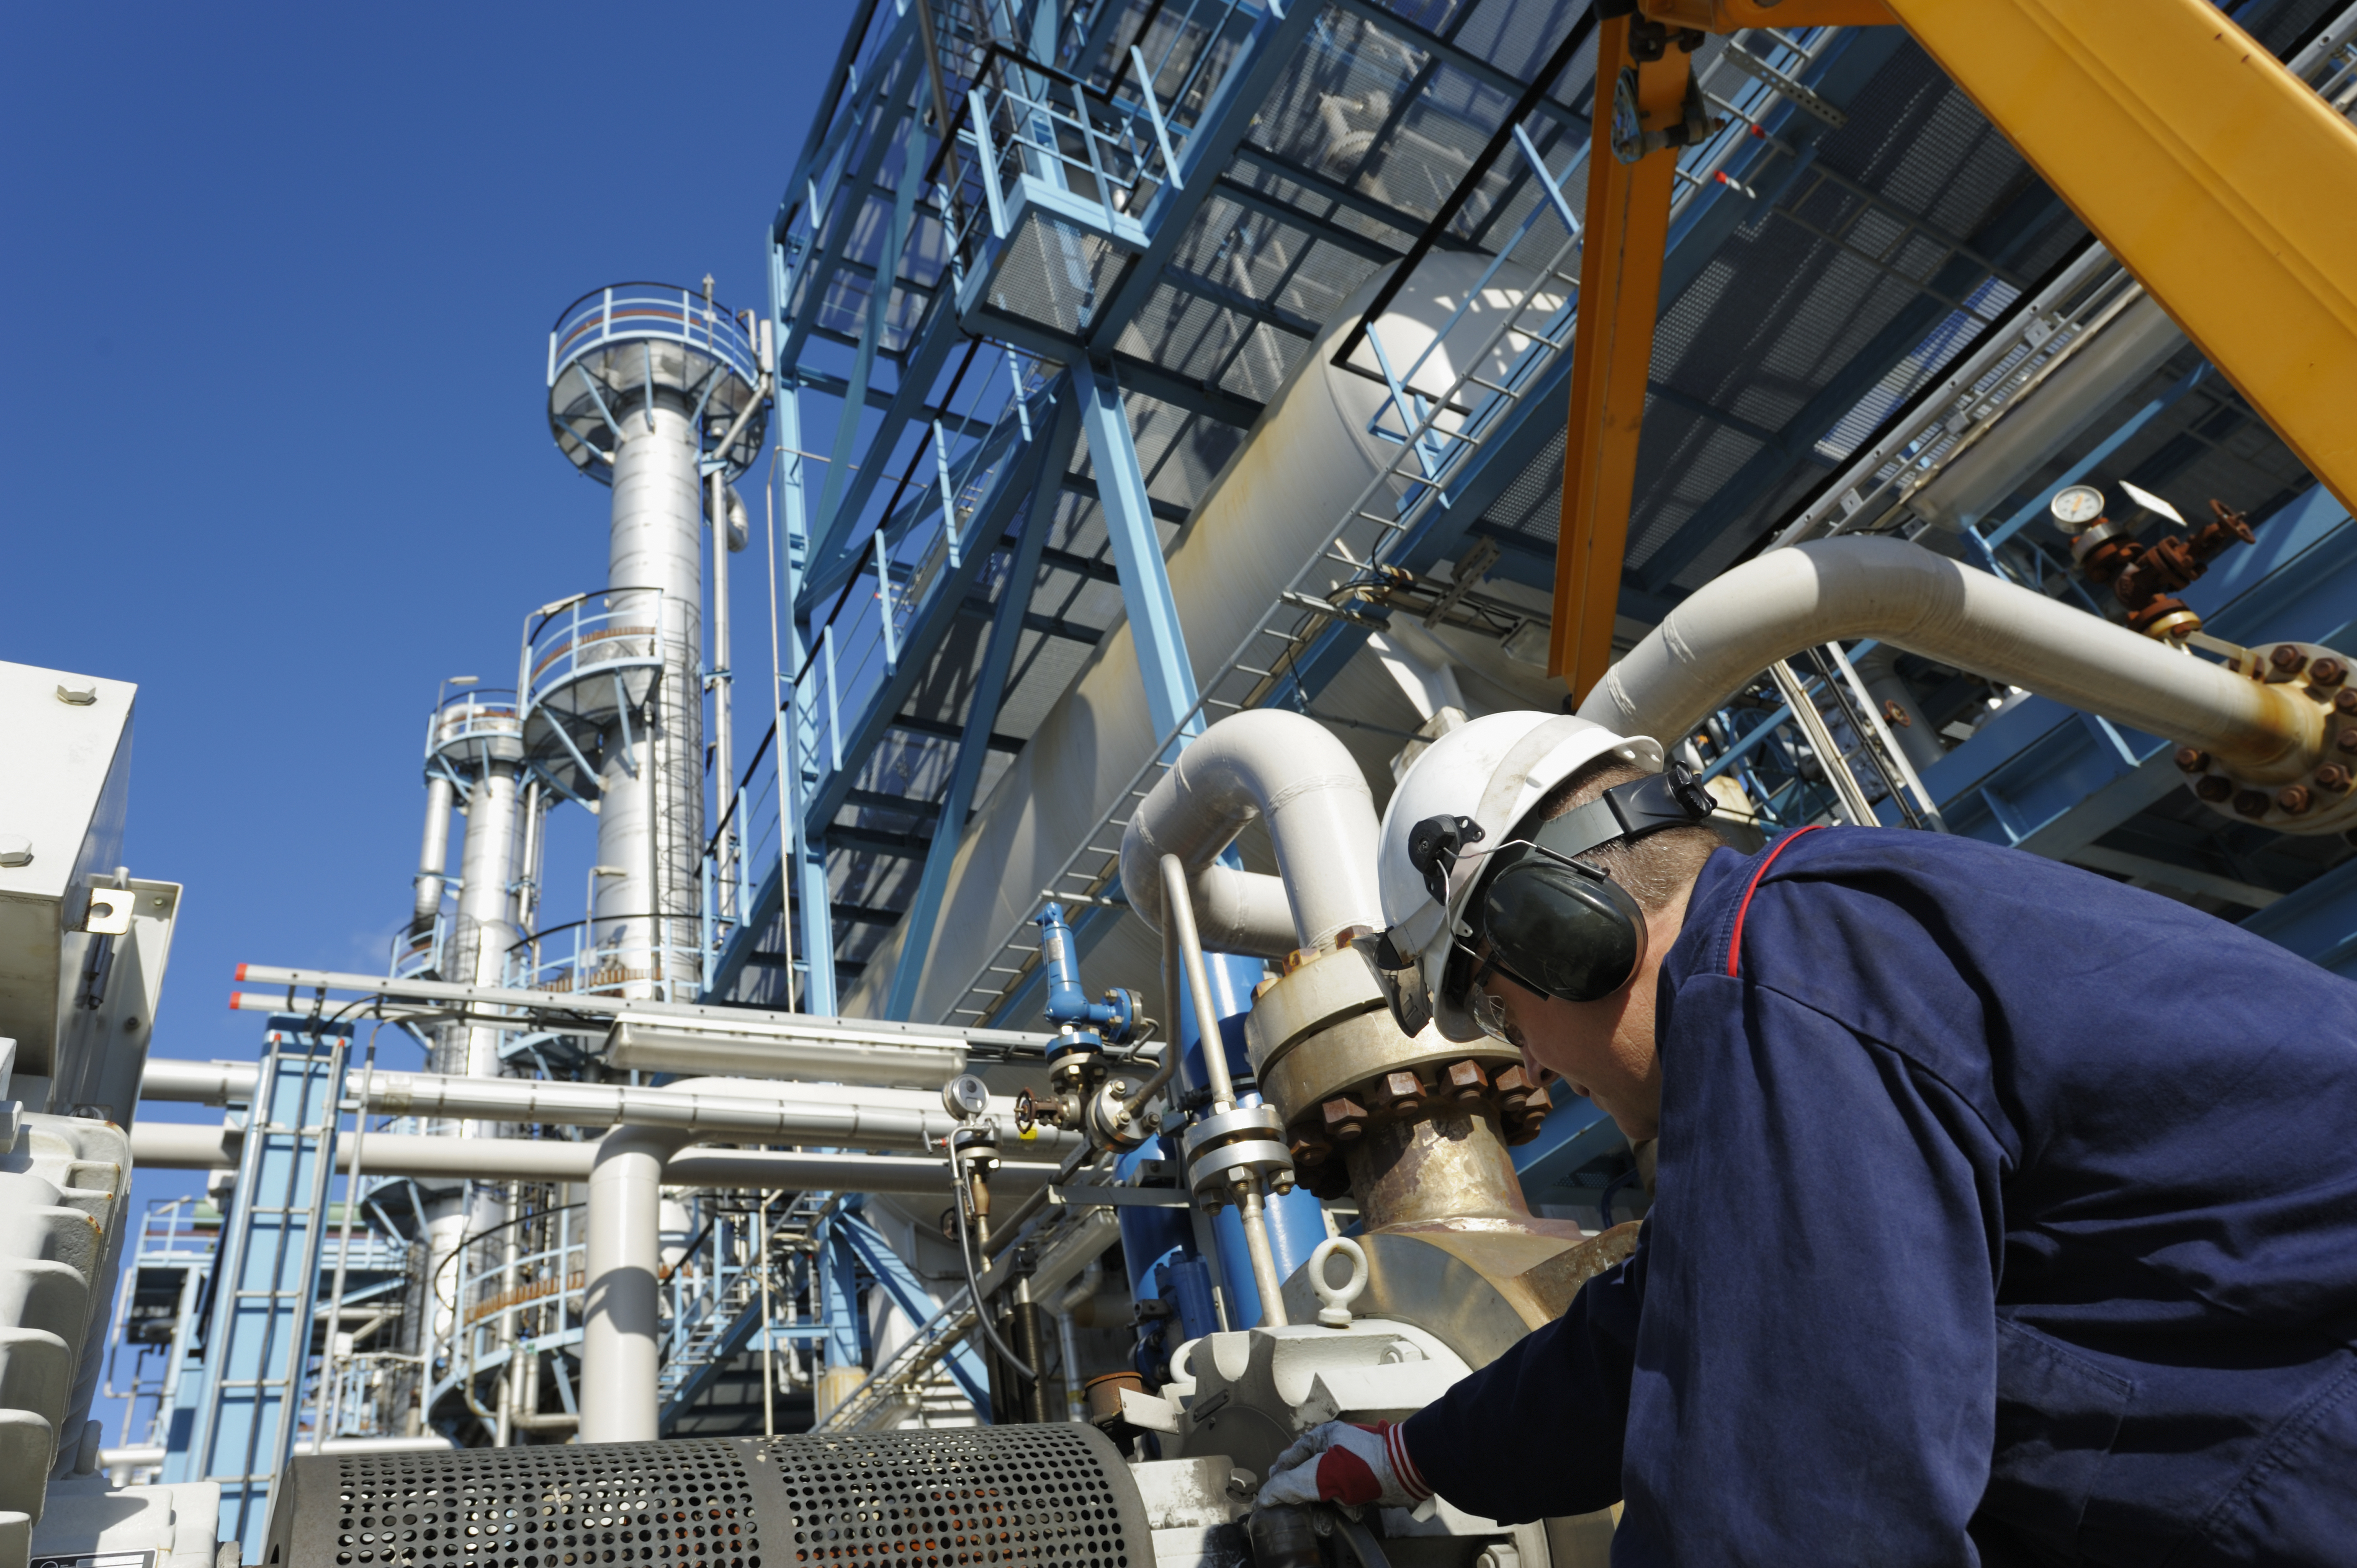 Worker at production refinery